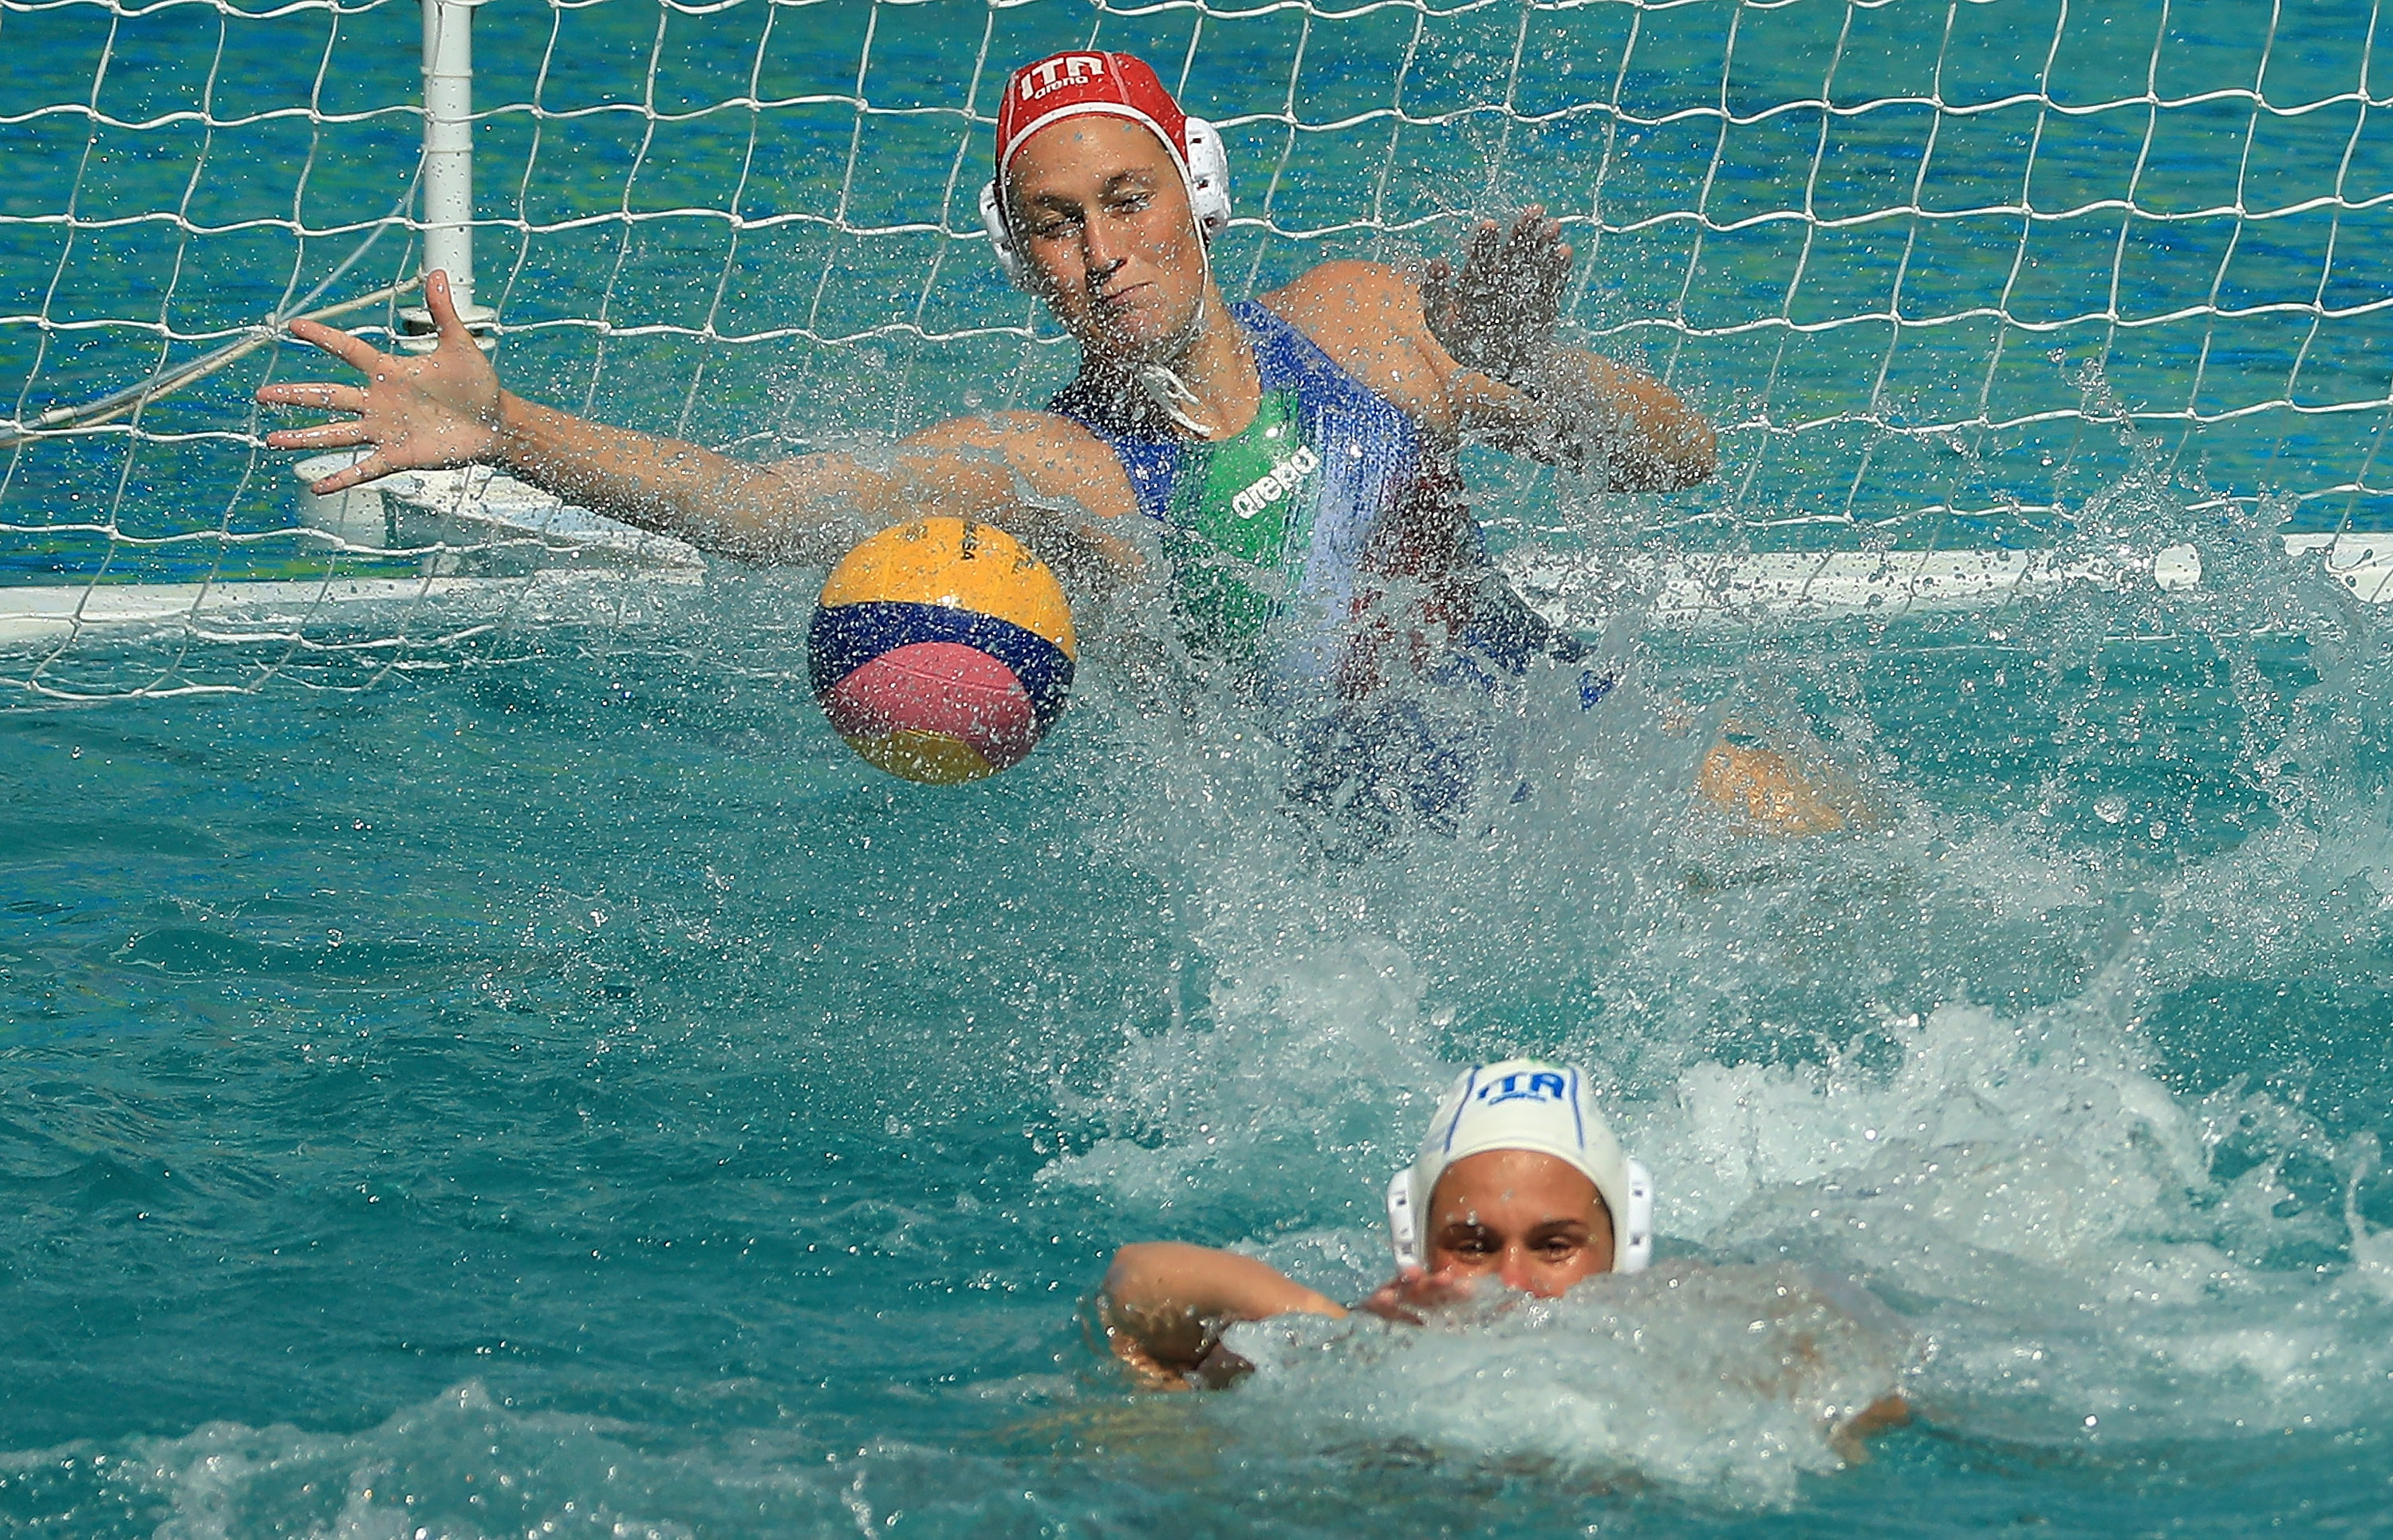 Olympics Water Polo Live Stream Live Stream August 13